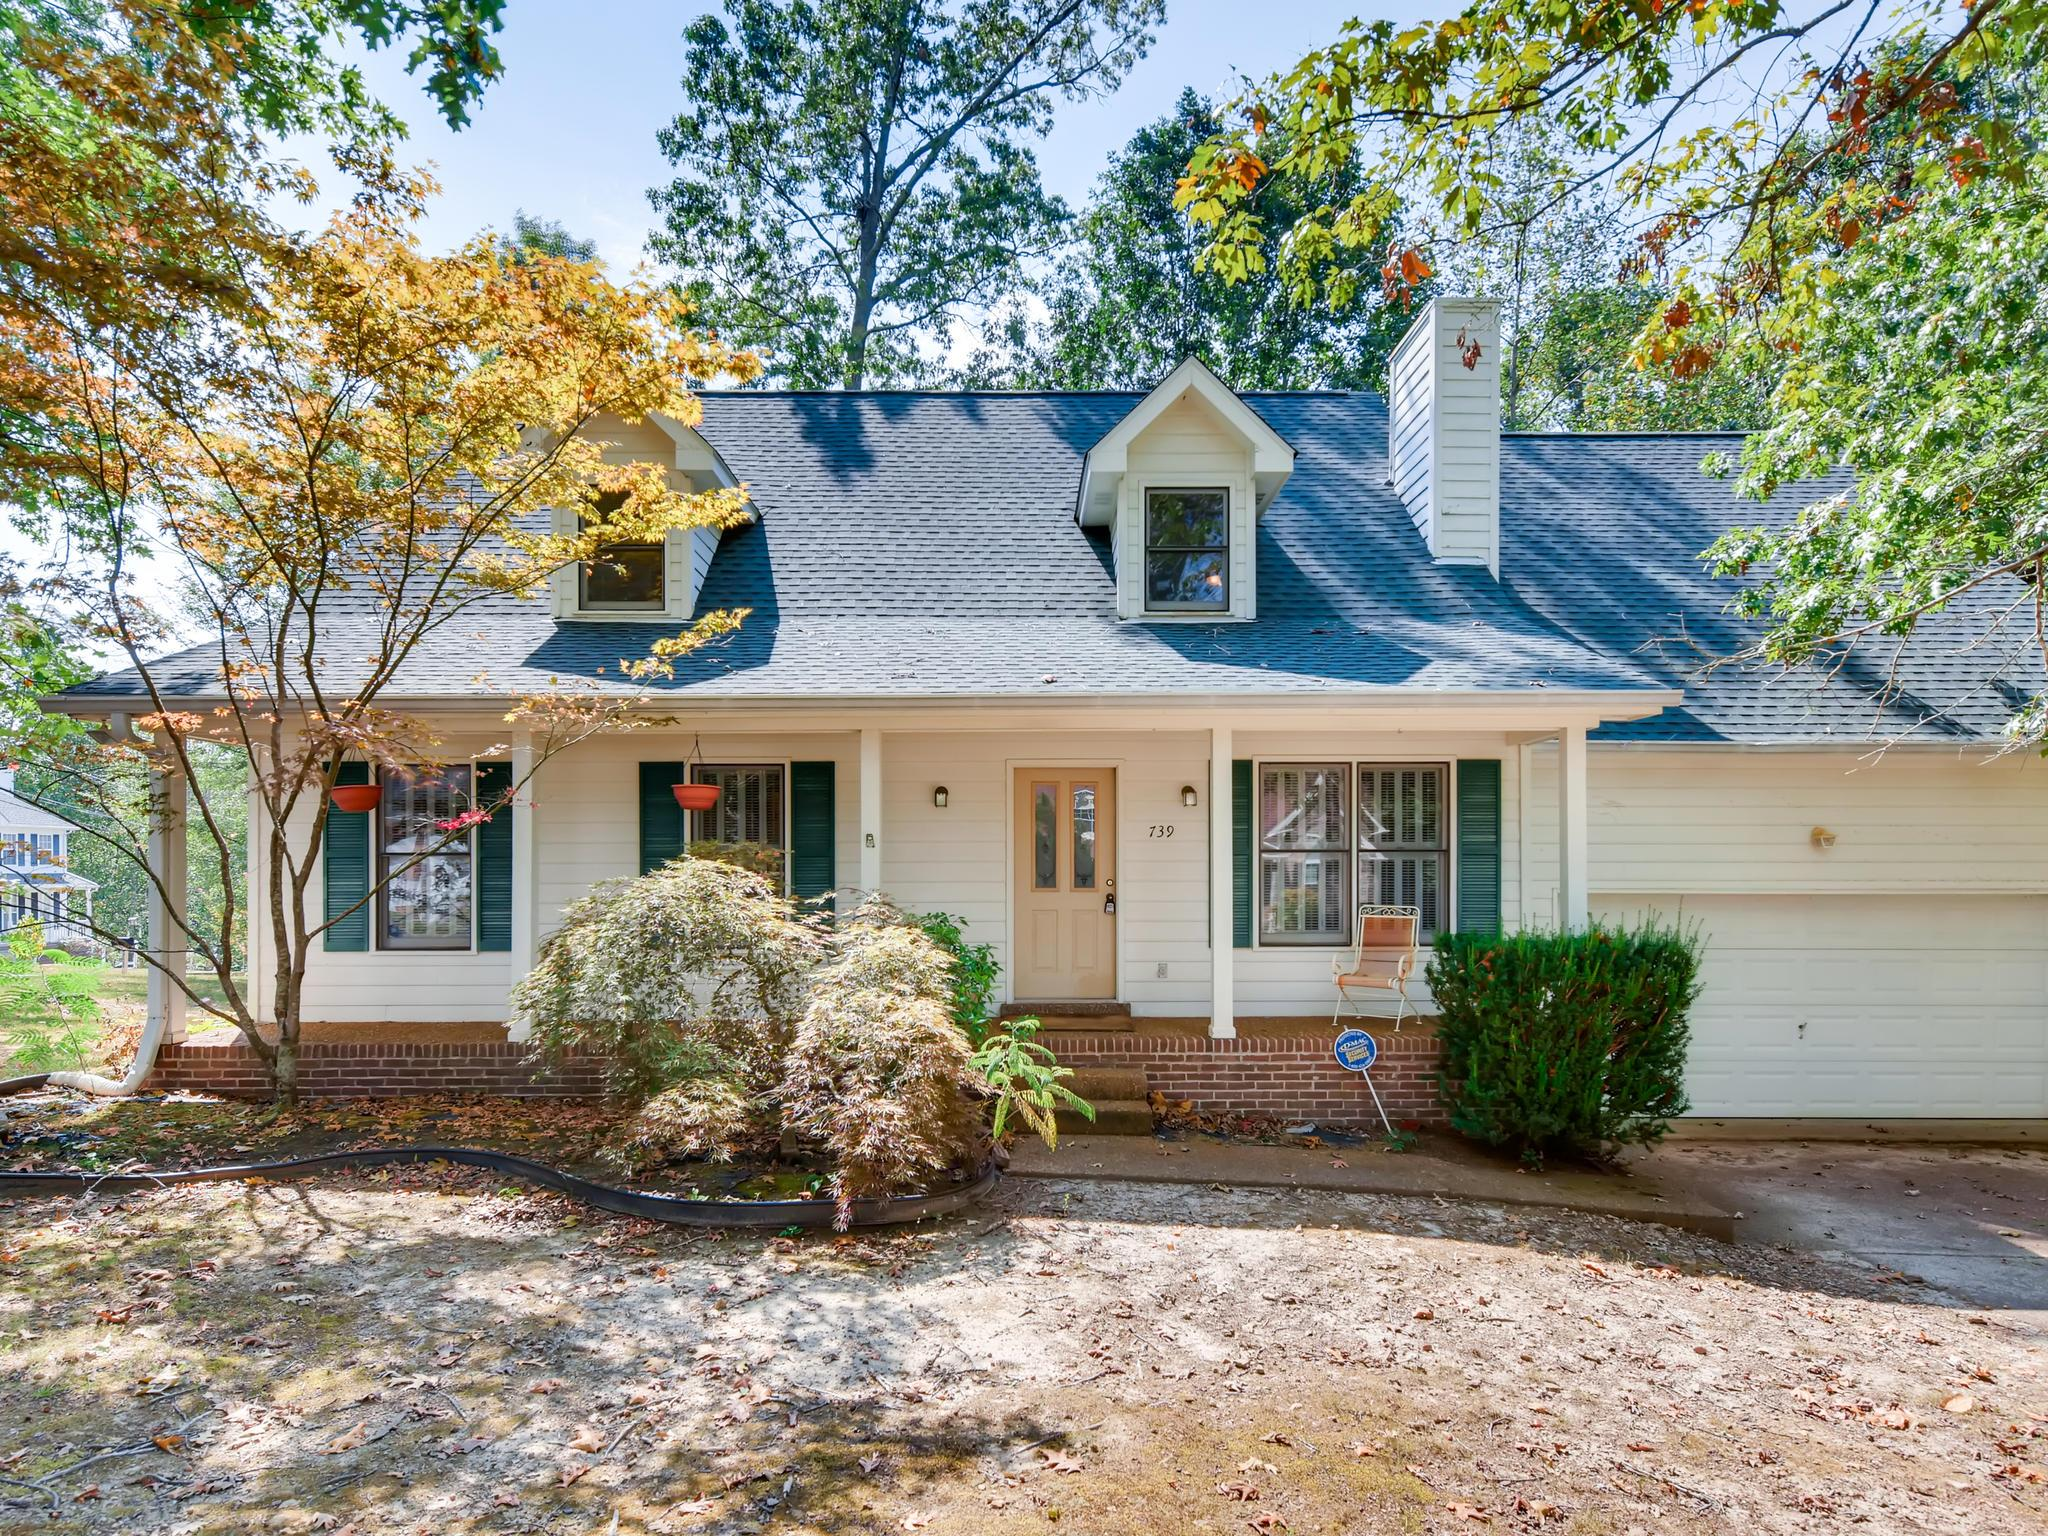 739 Lone Oak Dr, Pegram, TN 37143 - Pegram, TN real estate listing